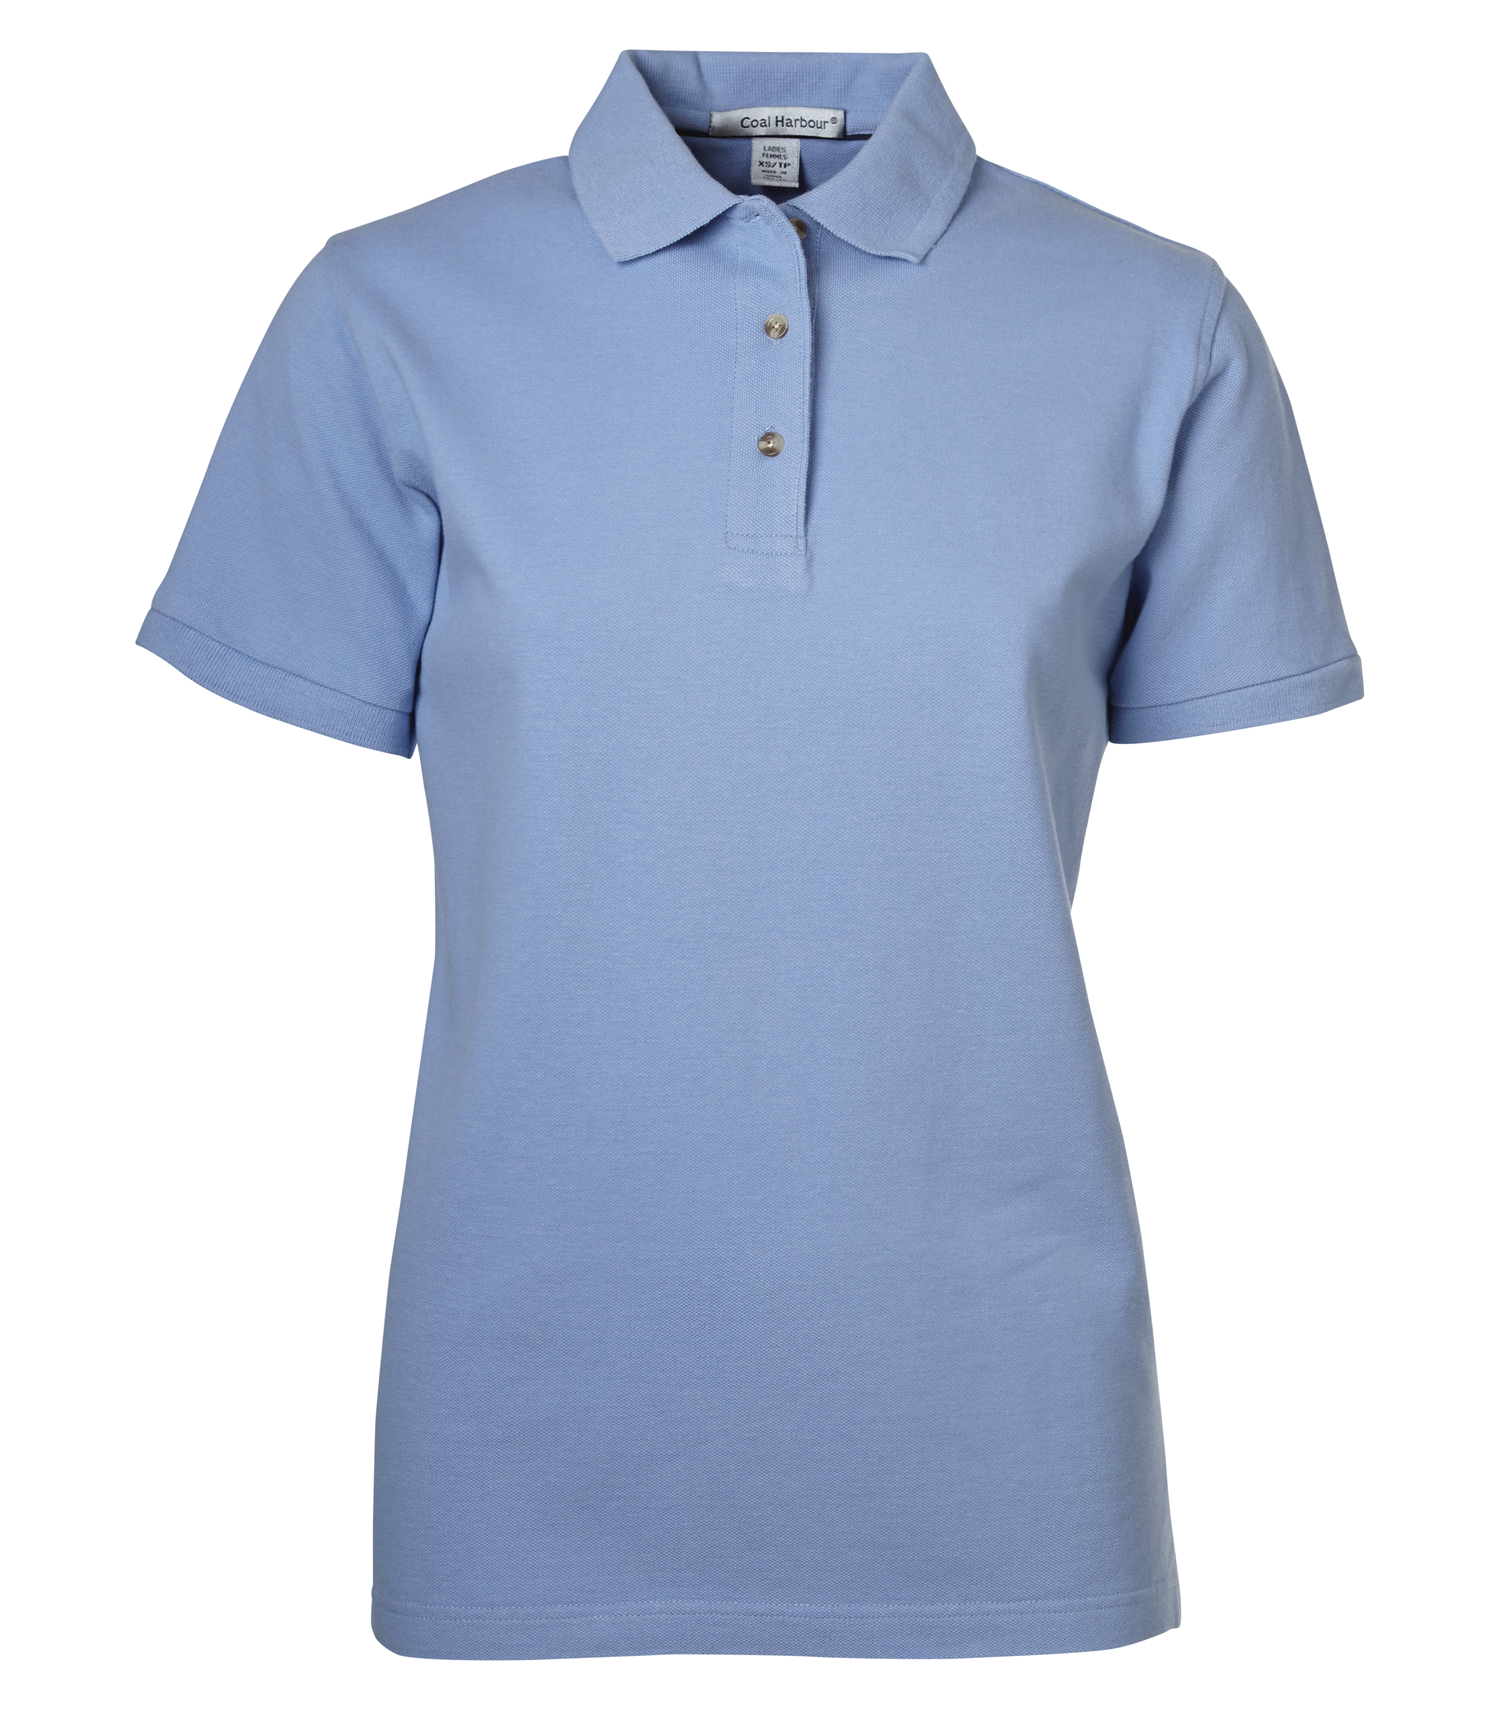 LADIES COTTON POLO SHIRT - CLEARANCE - BLUEBERRY